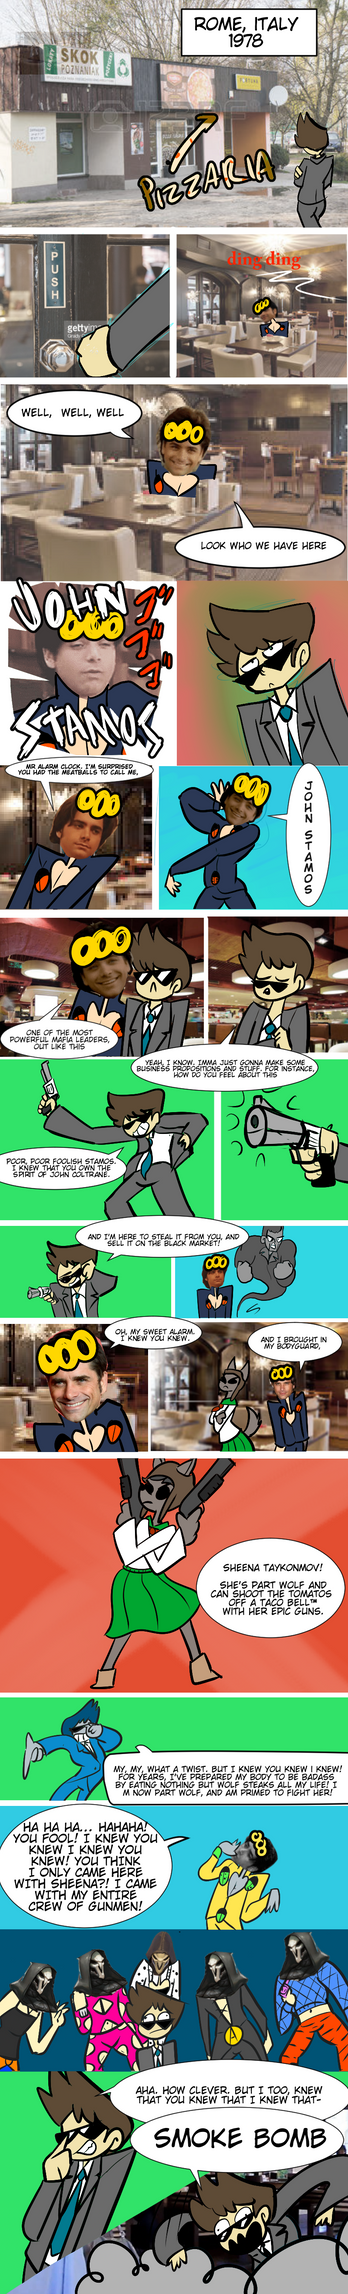 CJ OCT Audition Page 1 by ChrisTheBlue